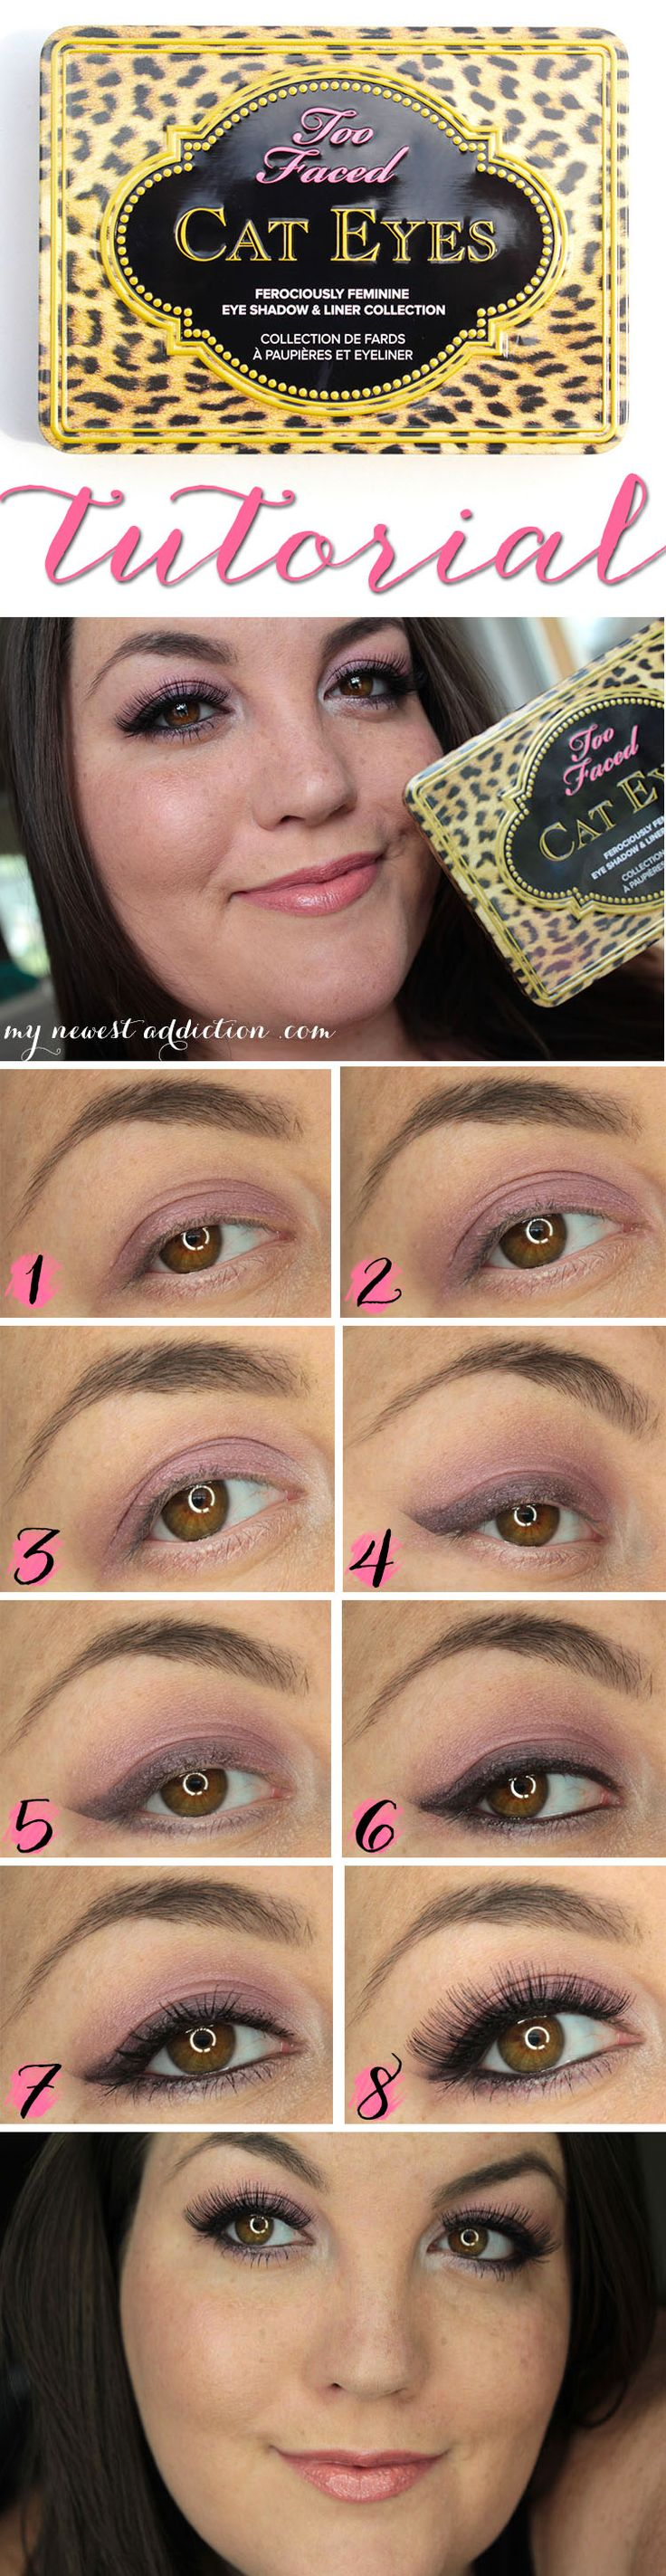 Step by Step tutorial for the Too Faced Cat Eyes Palette!  www.mynewestaddiction.com